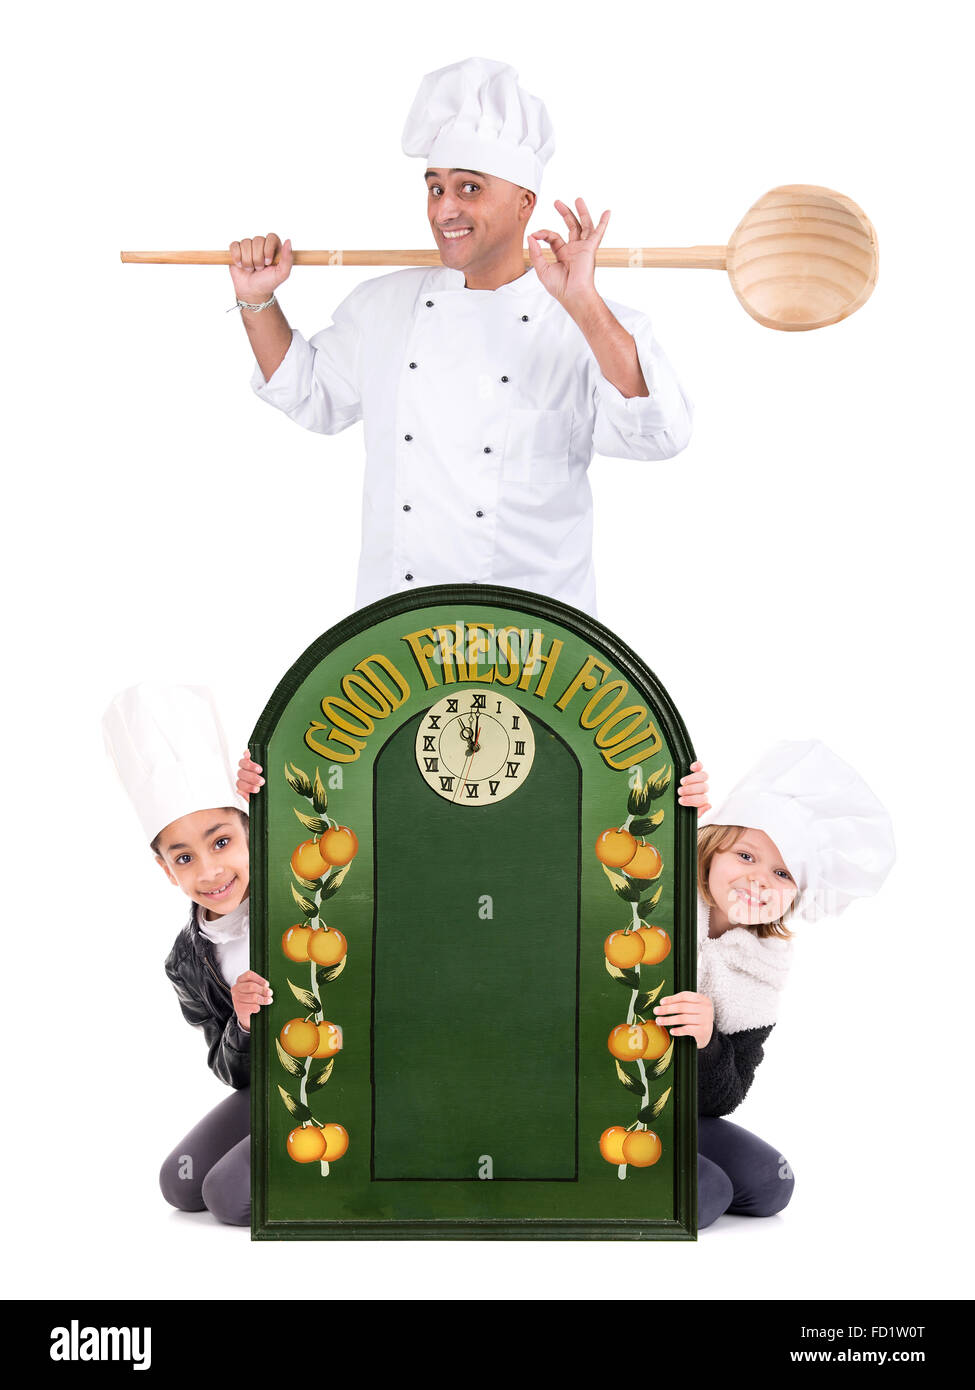 Male chef with young chefs isolated on white background - Stock Image